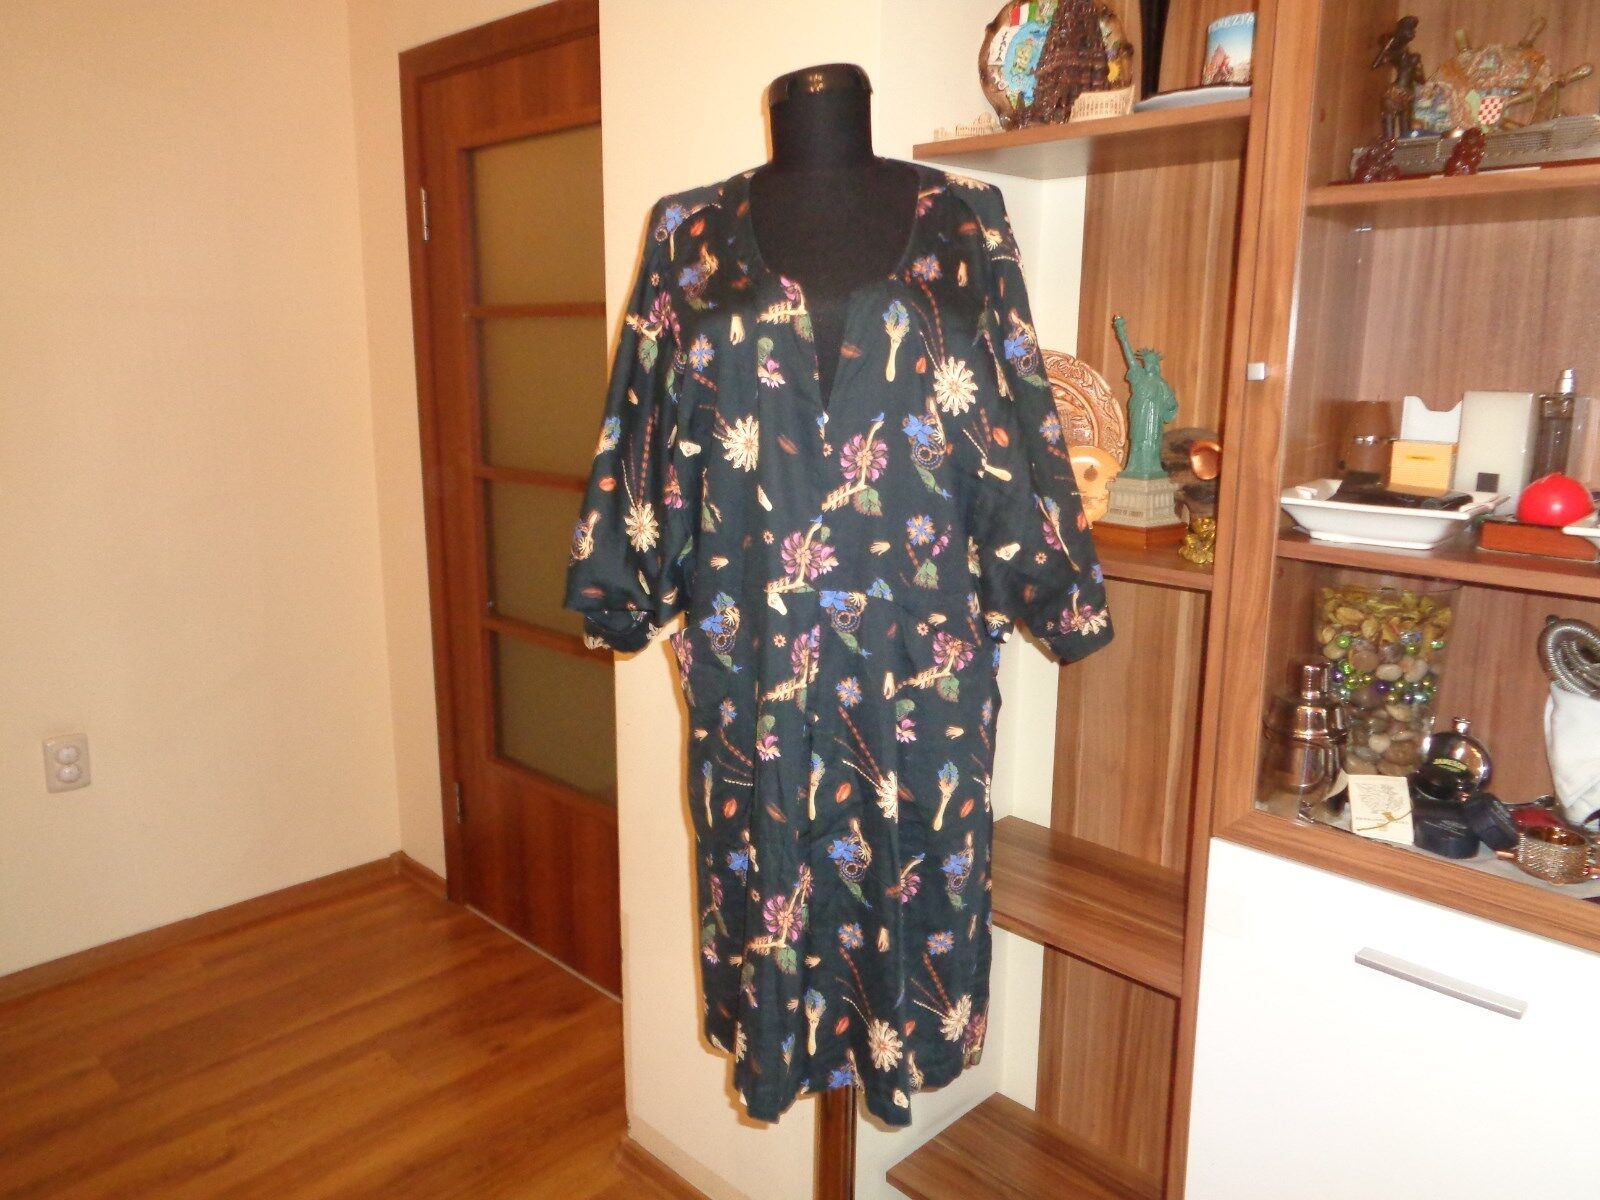 HOPE BY RINGSTRAND SODERBERG MULITcolorD FLORAL LAGENLOOK BATWING SLEEVES TUNIC